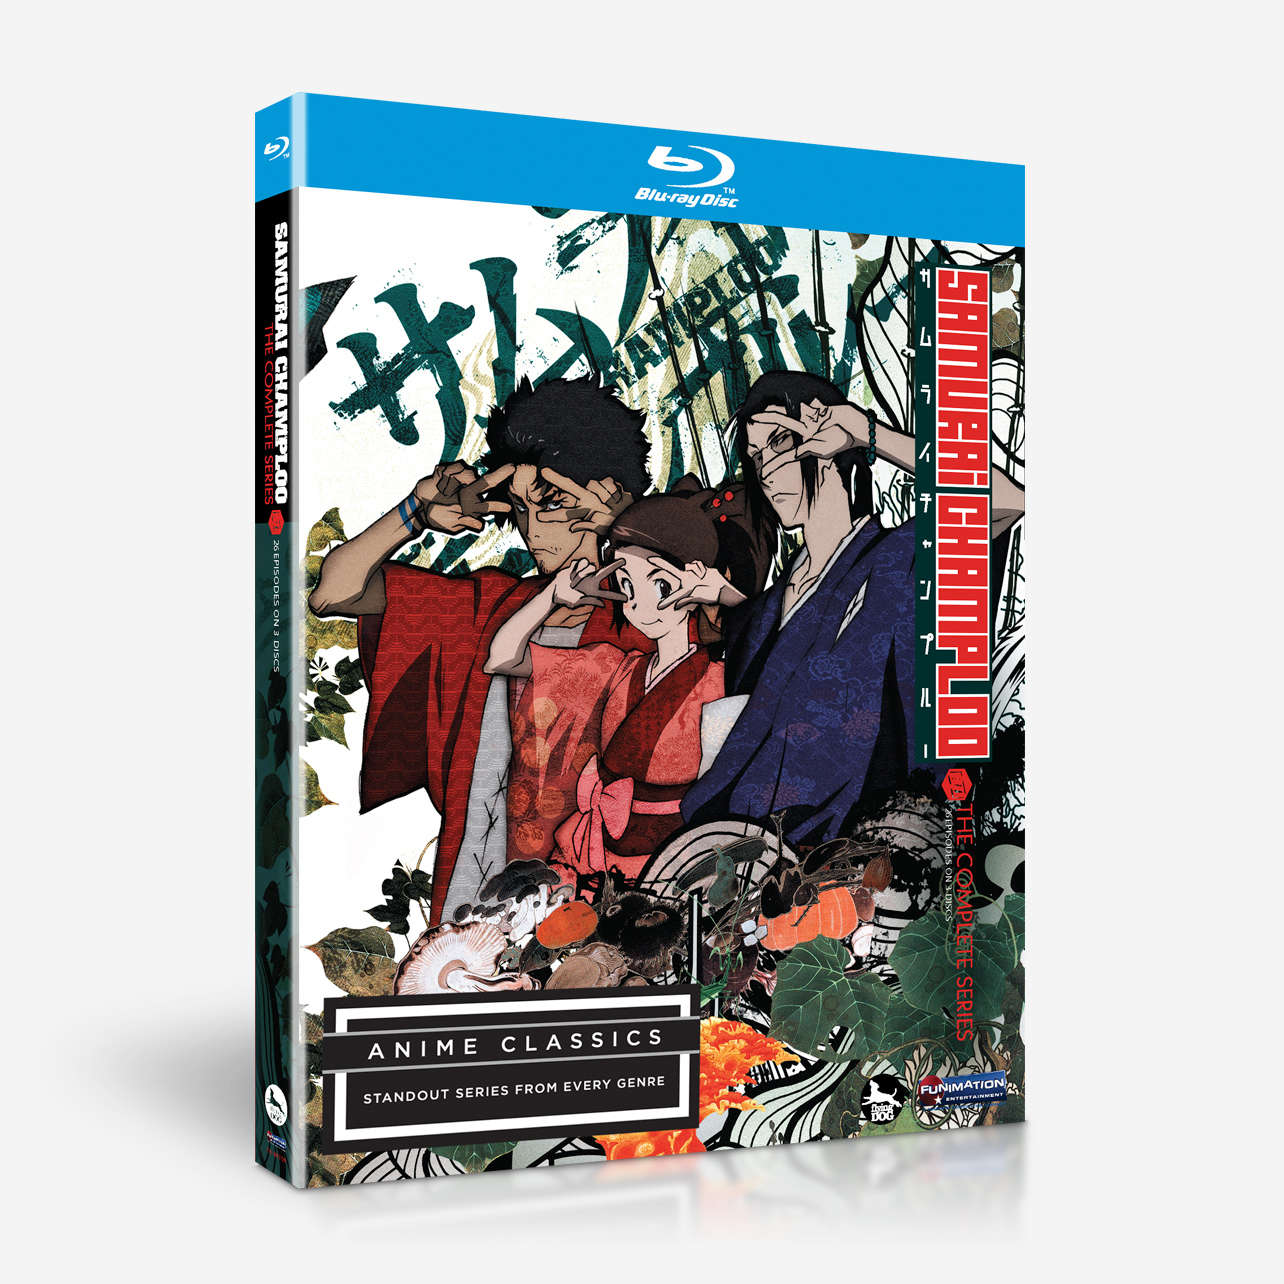 The Complete Series - Anime Classics home-video